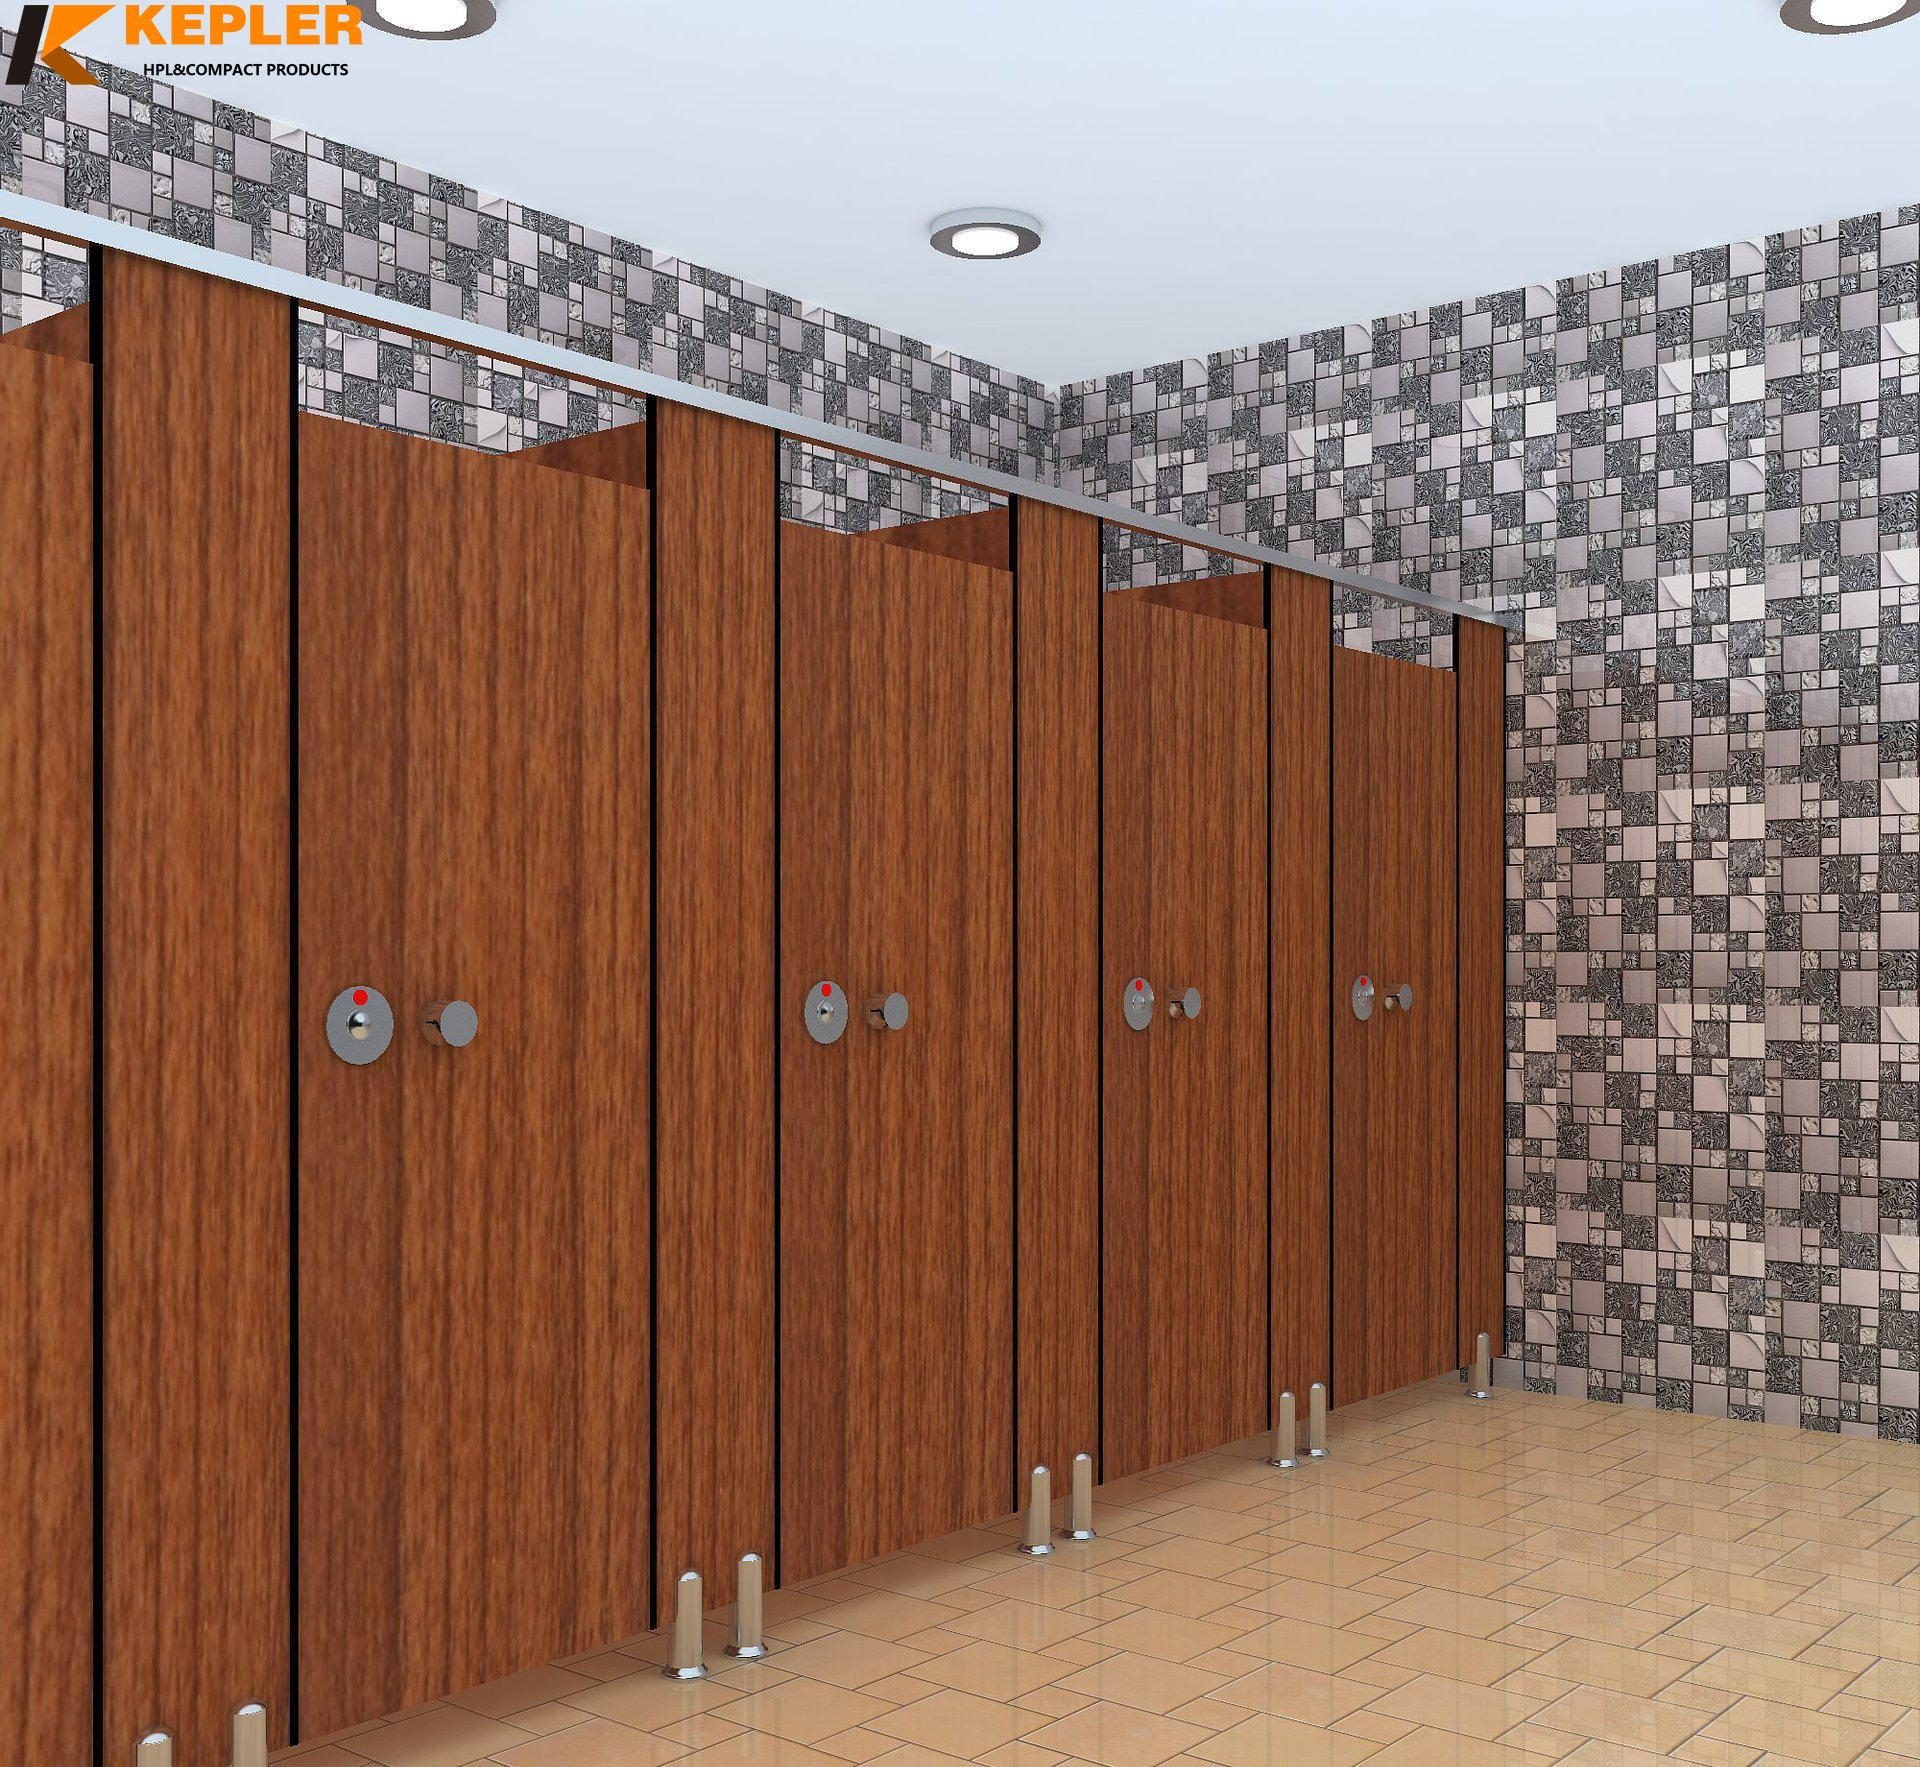 China manufacture bathroom hpl partition Compact hpl laminate toilet cubicle partition China manufacture bathroom hpl partition Compact hpl laminate toilet cubicle partition